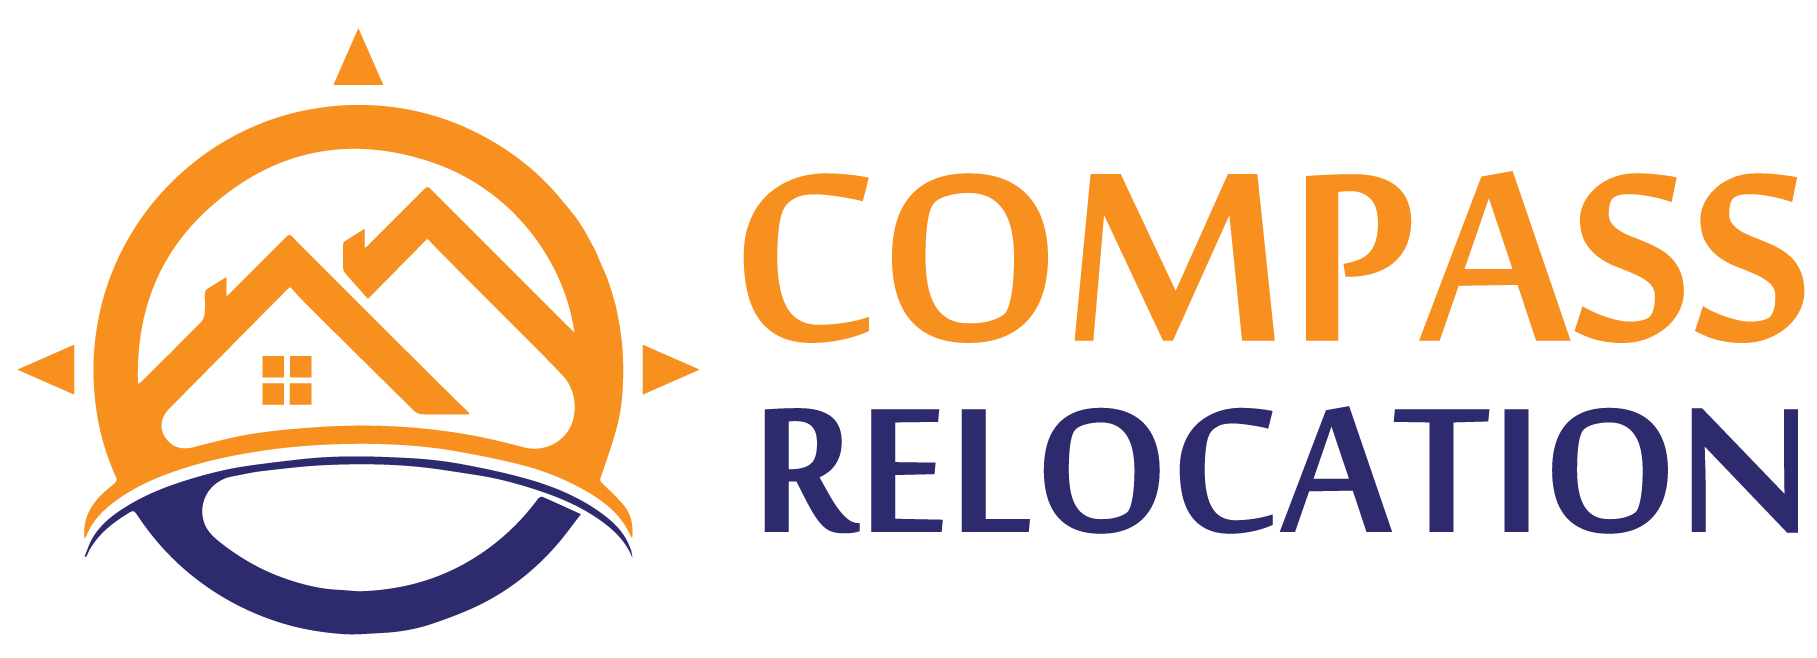 Compass Relocation